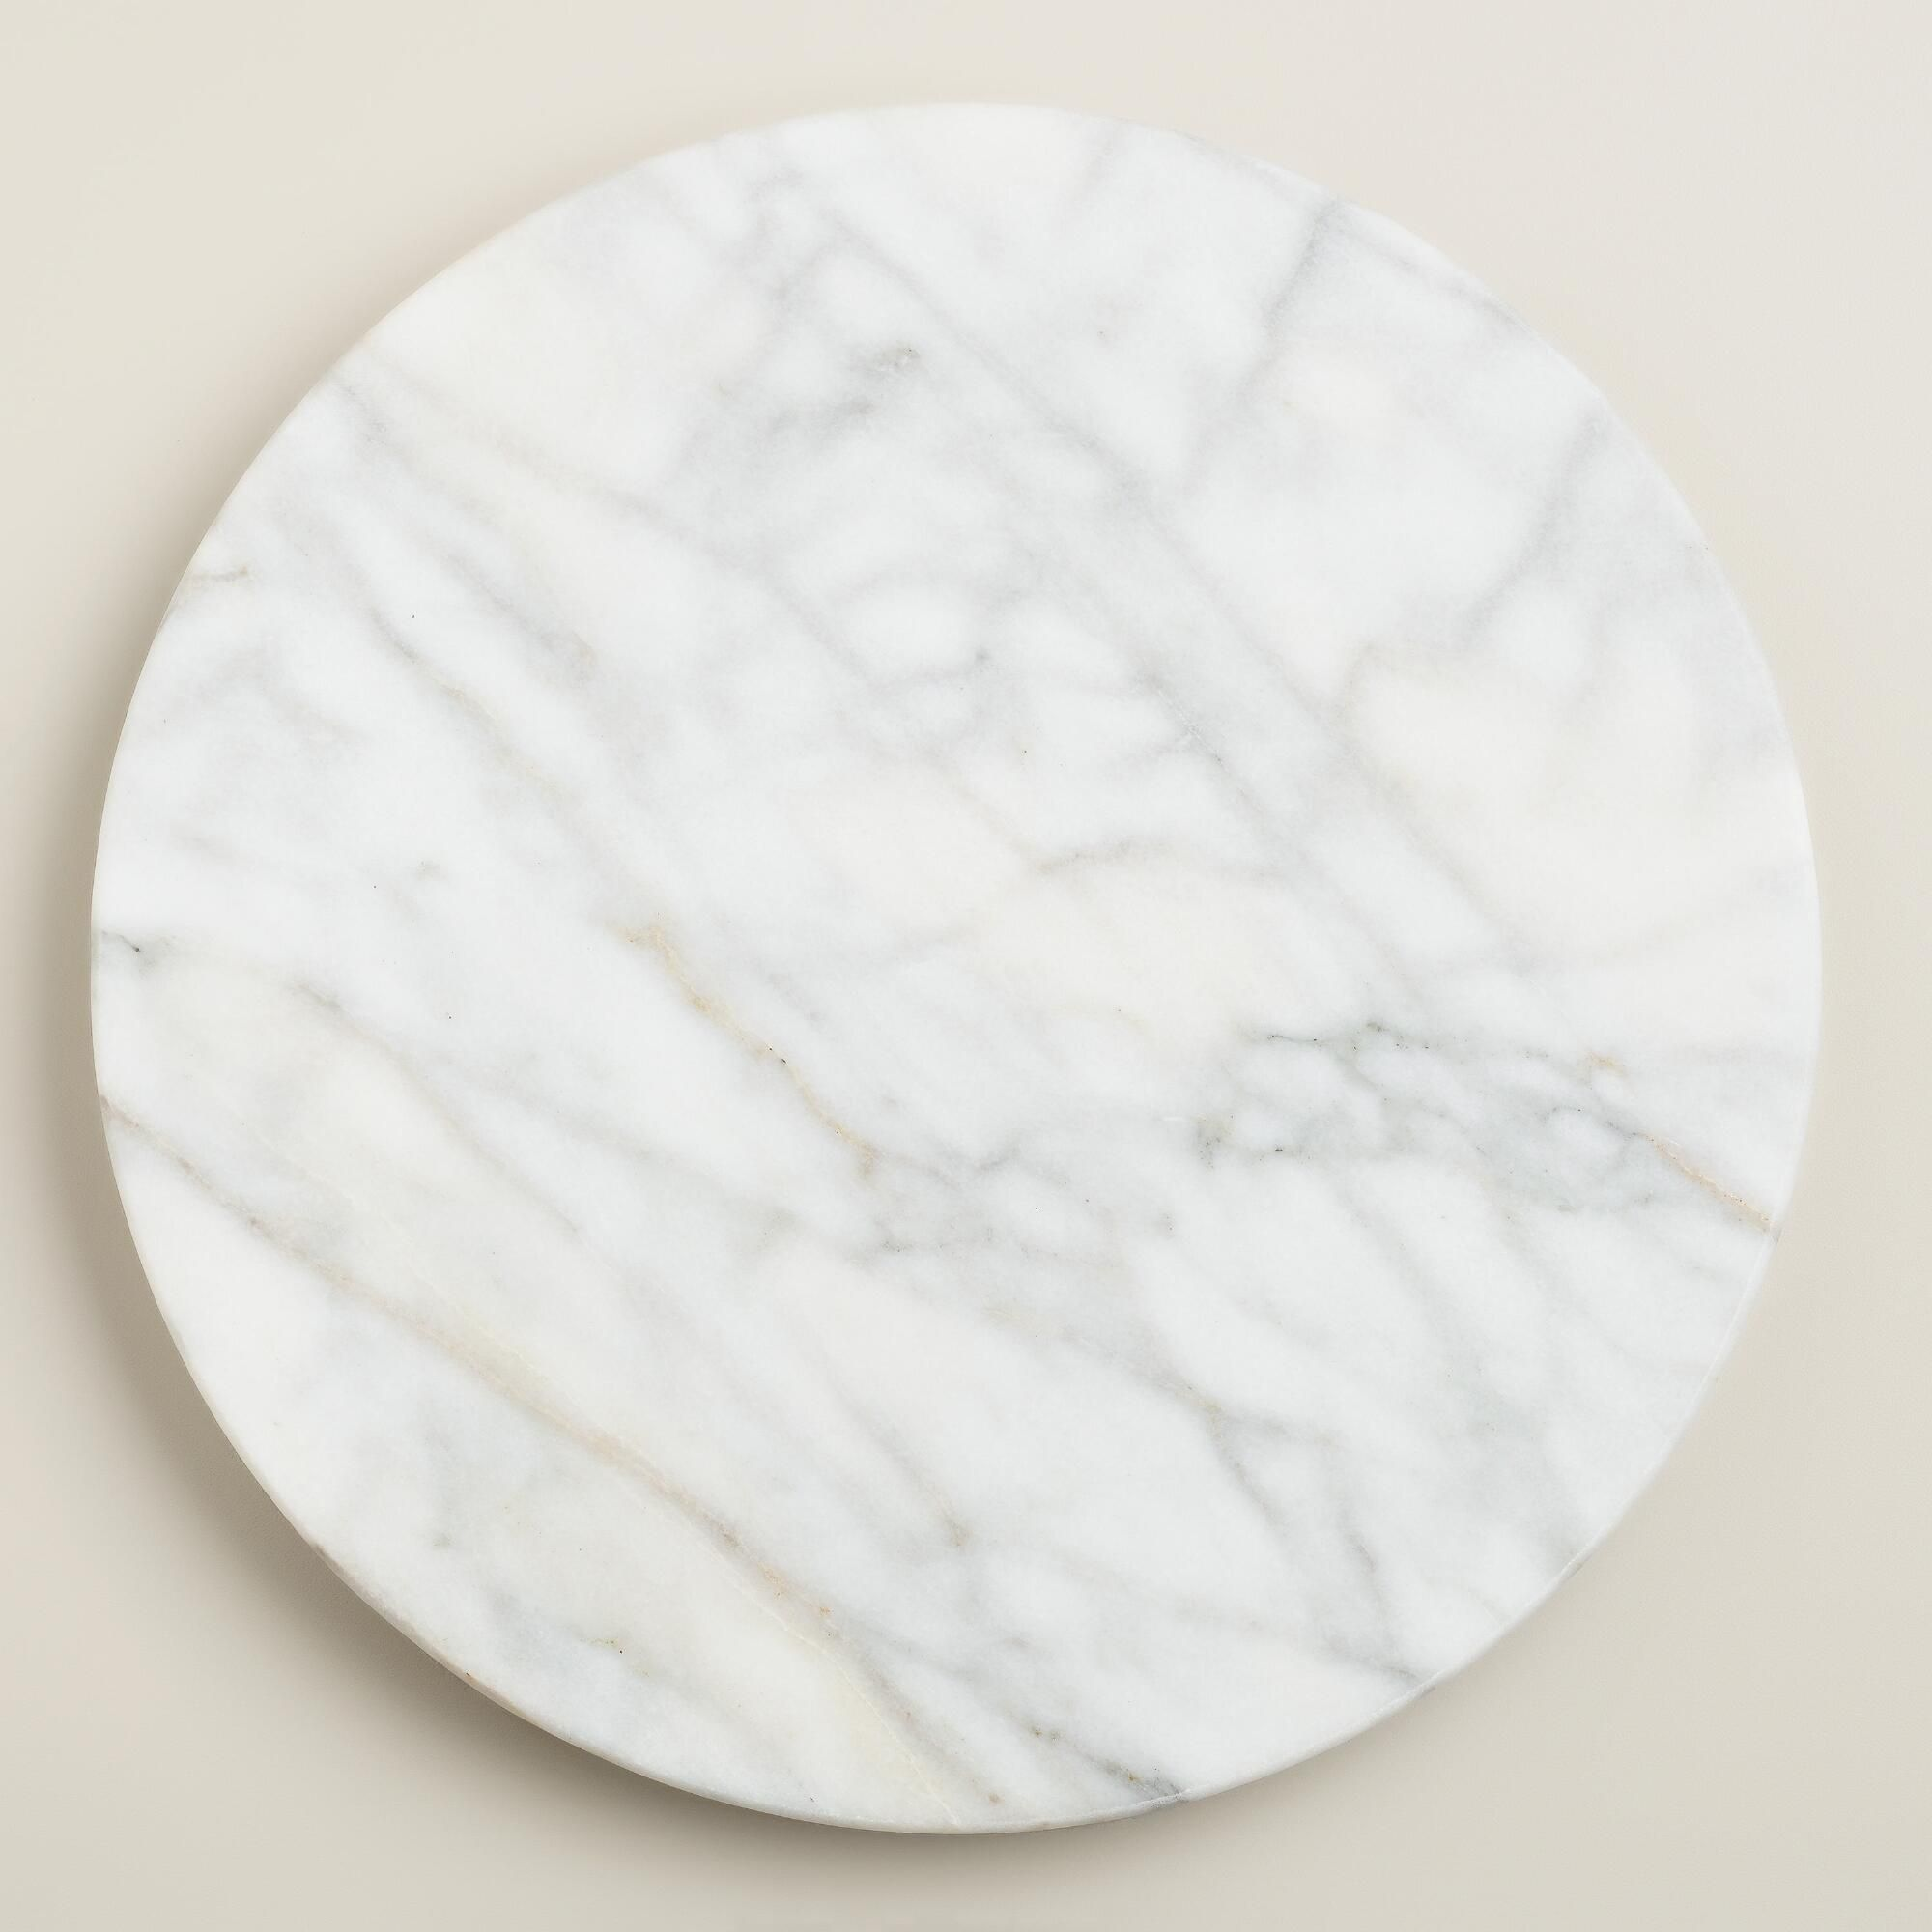 White Marble Lazy Susan Marble Lazy Susan Lazy Susan Kitchen Remodel Small